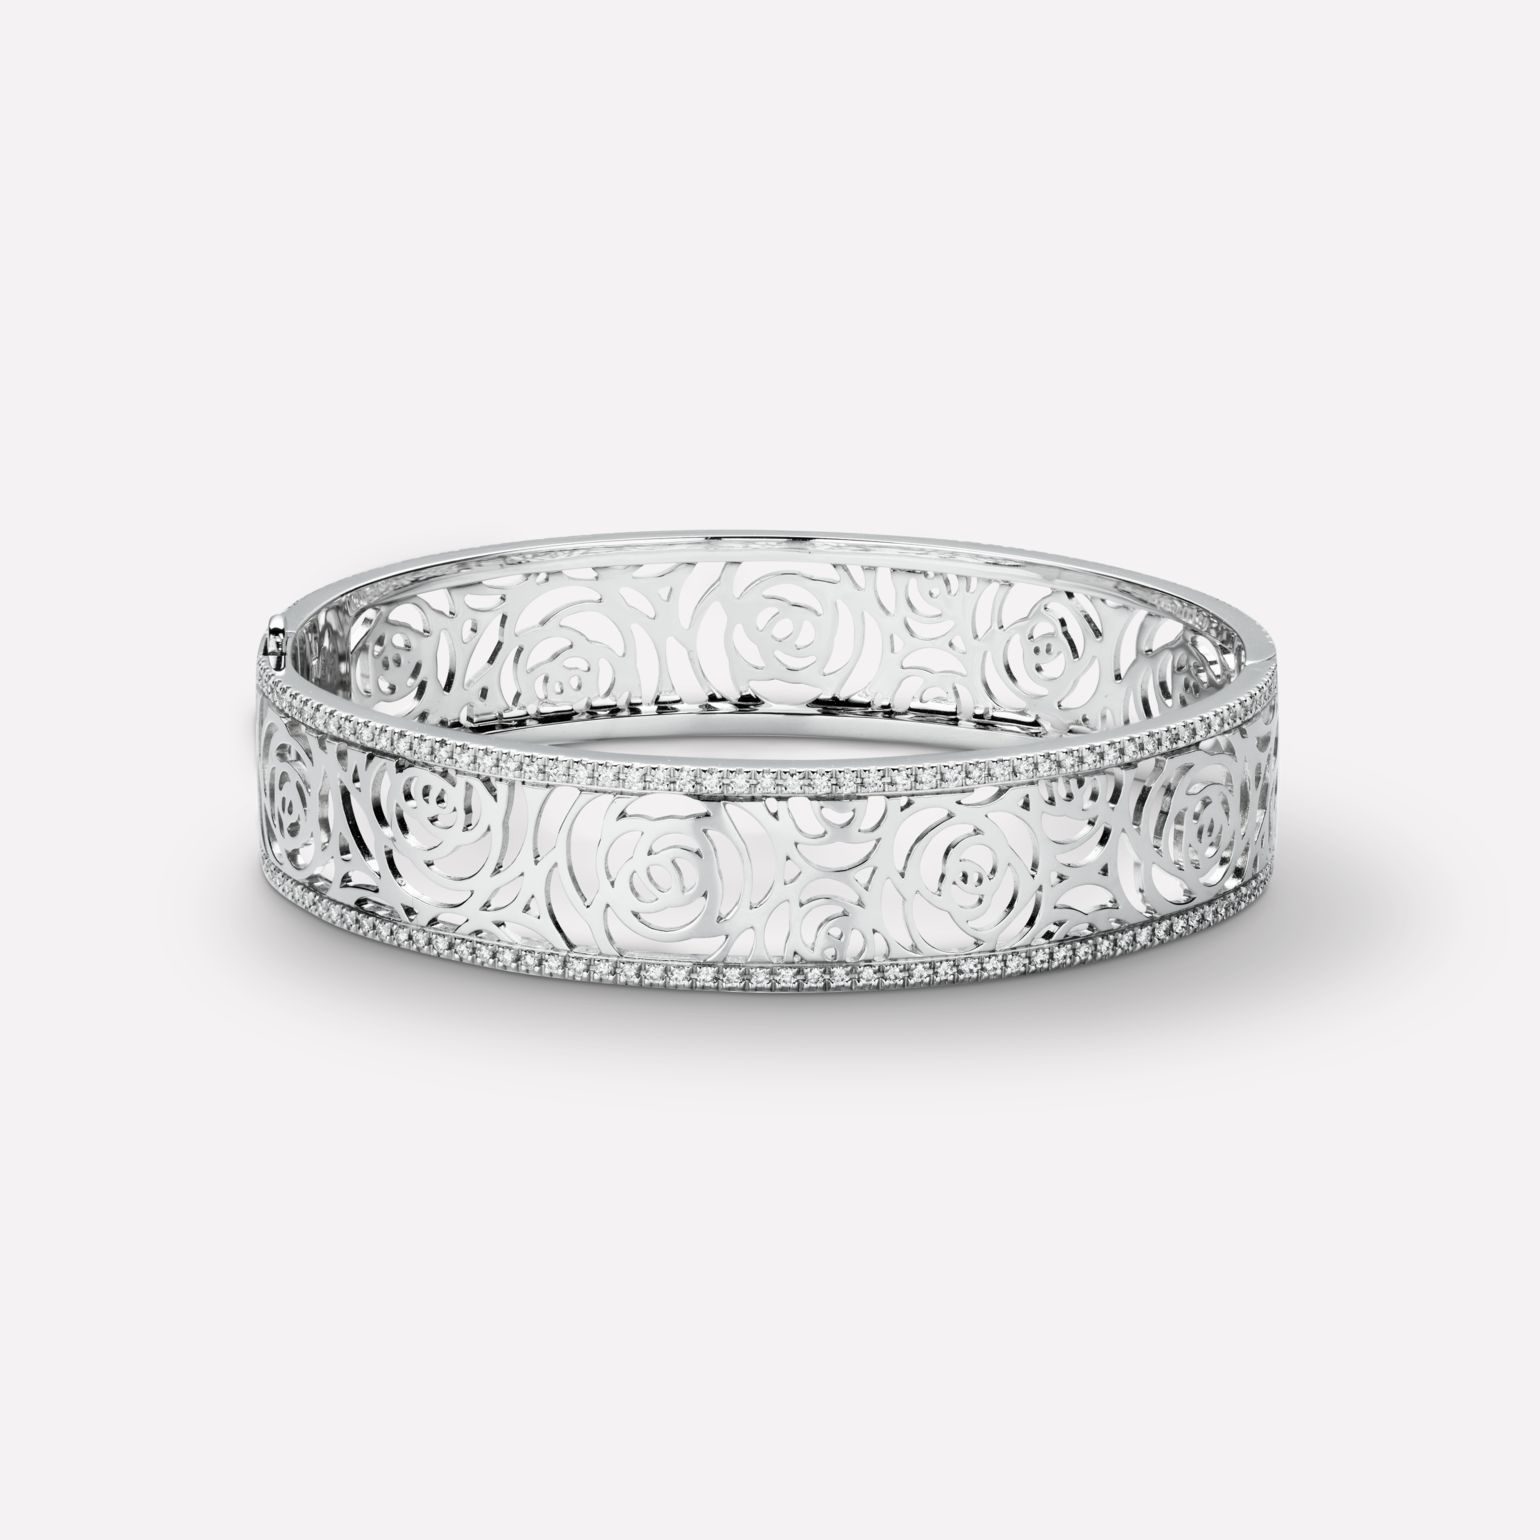 Camélia Bracelet Camélia Ajouré bangle in 18K white gold and diamonds